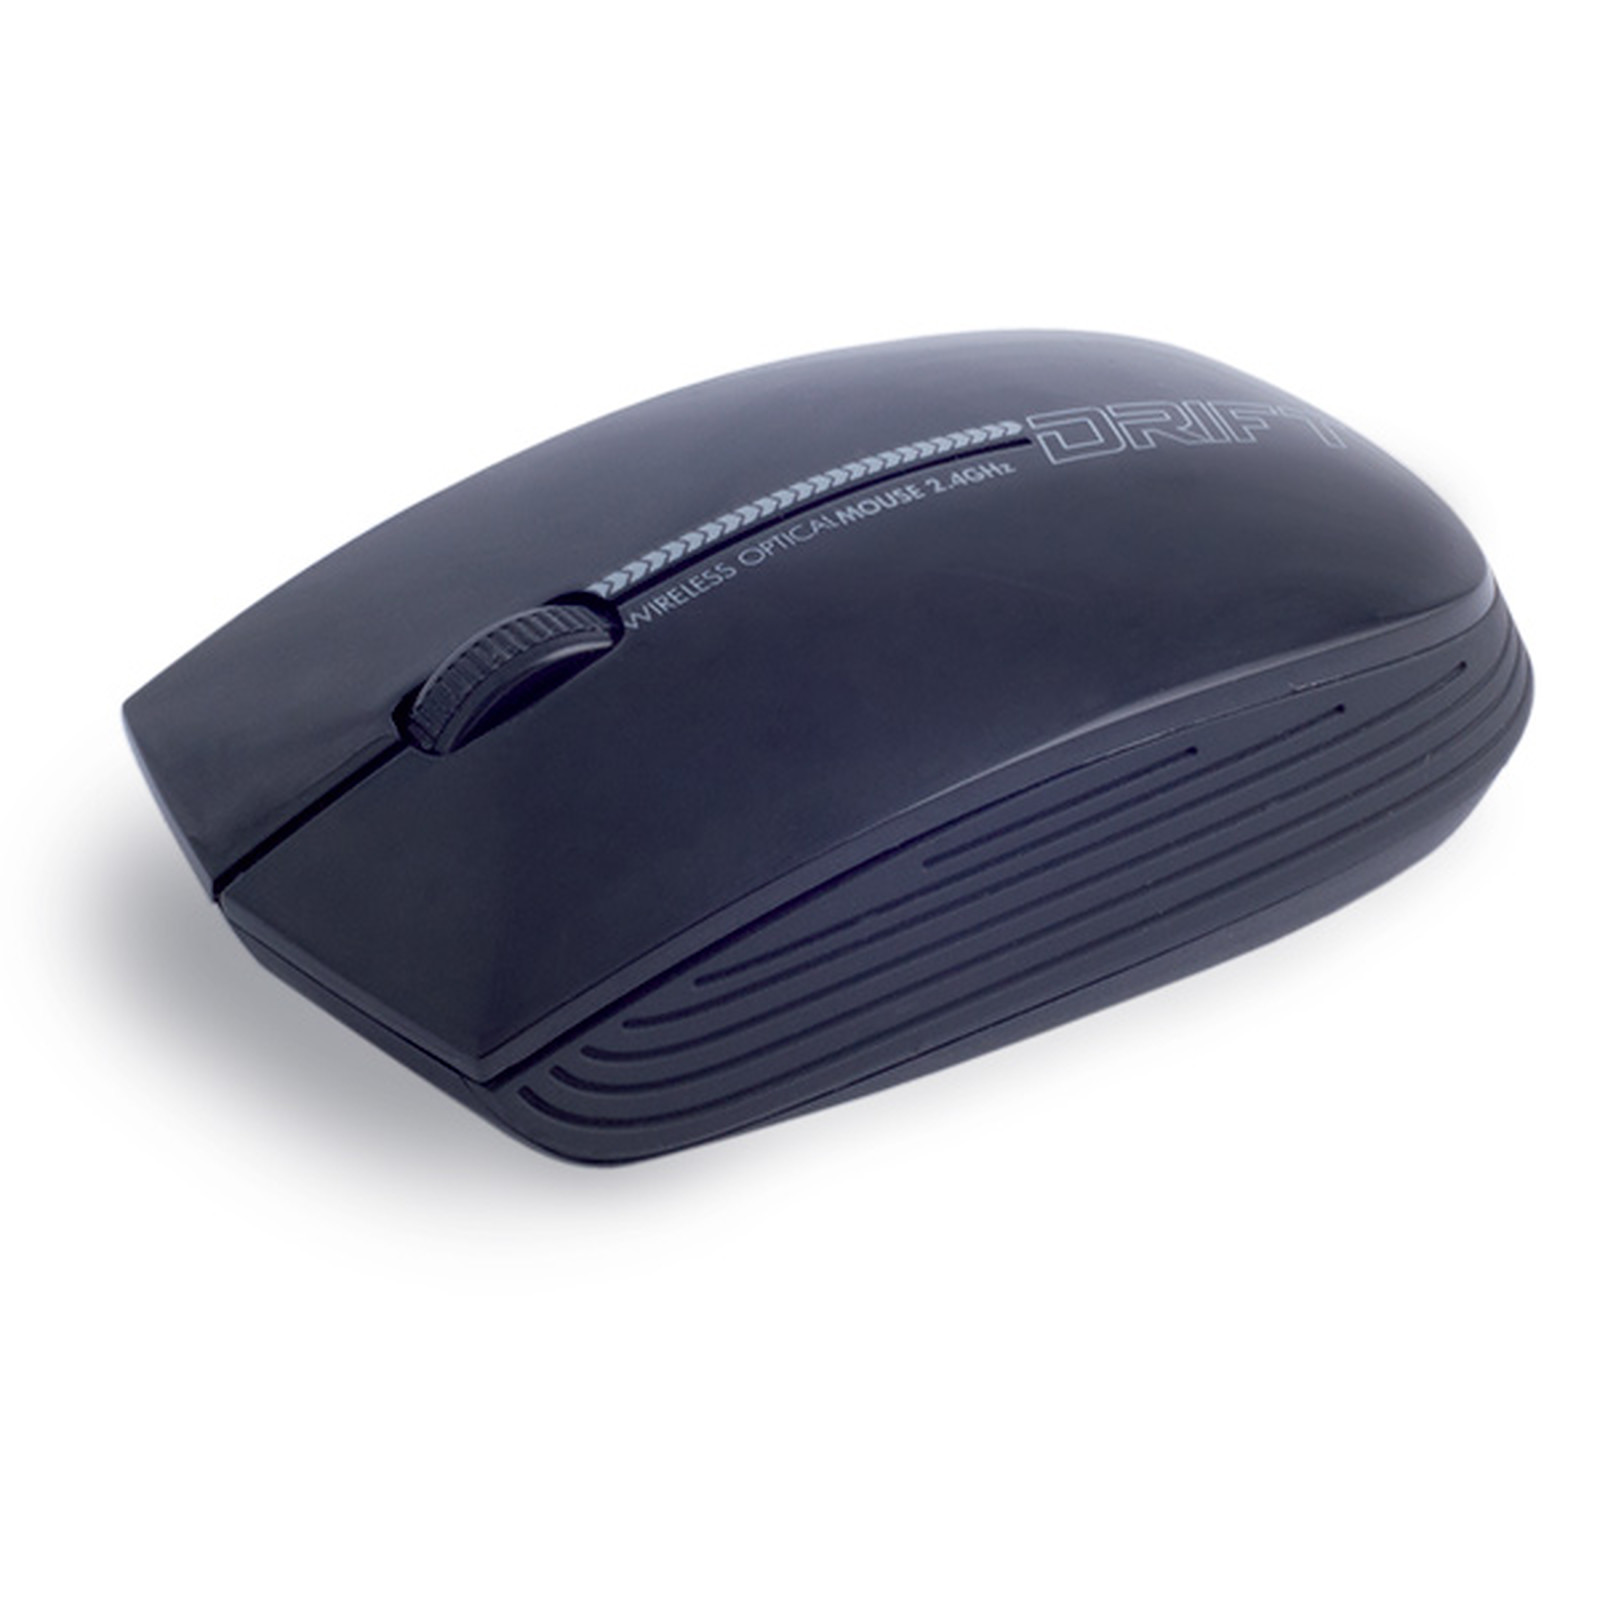 Advance Drift Mouse (noir)